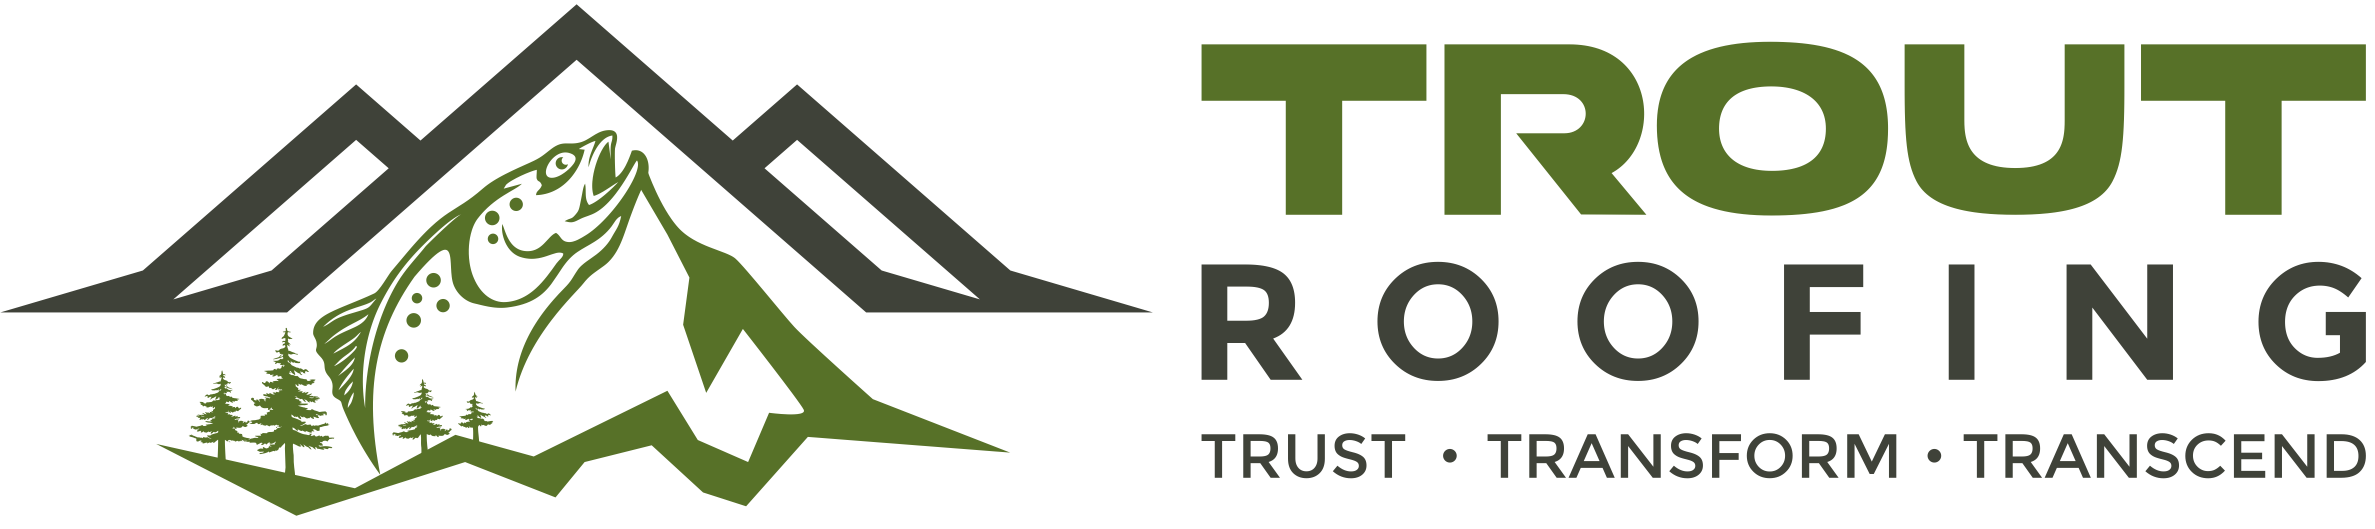 Trout Roofing Logo Big